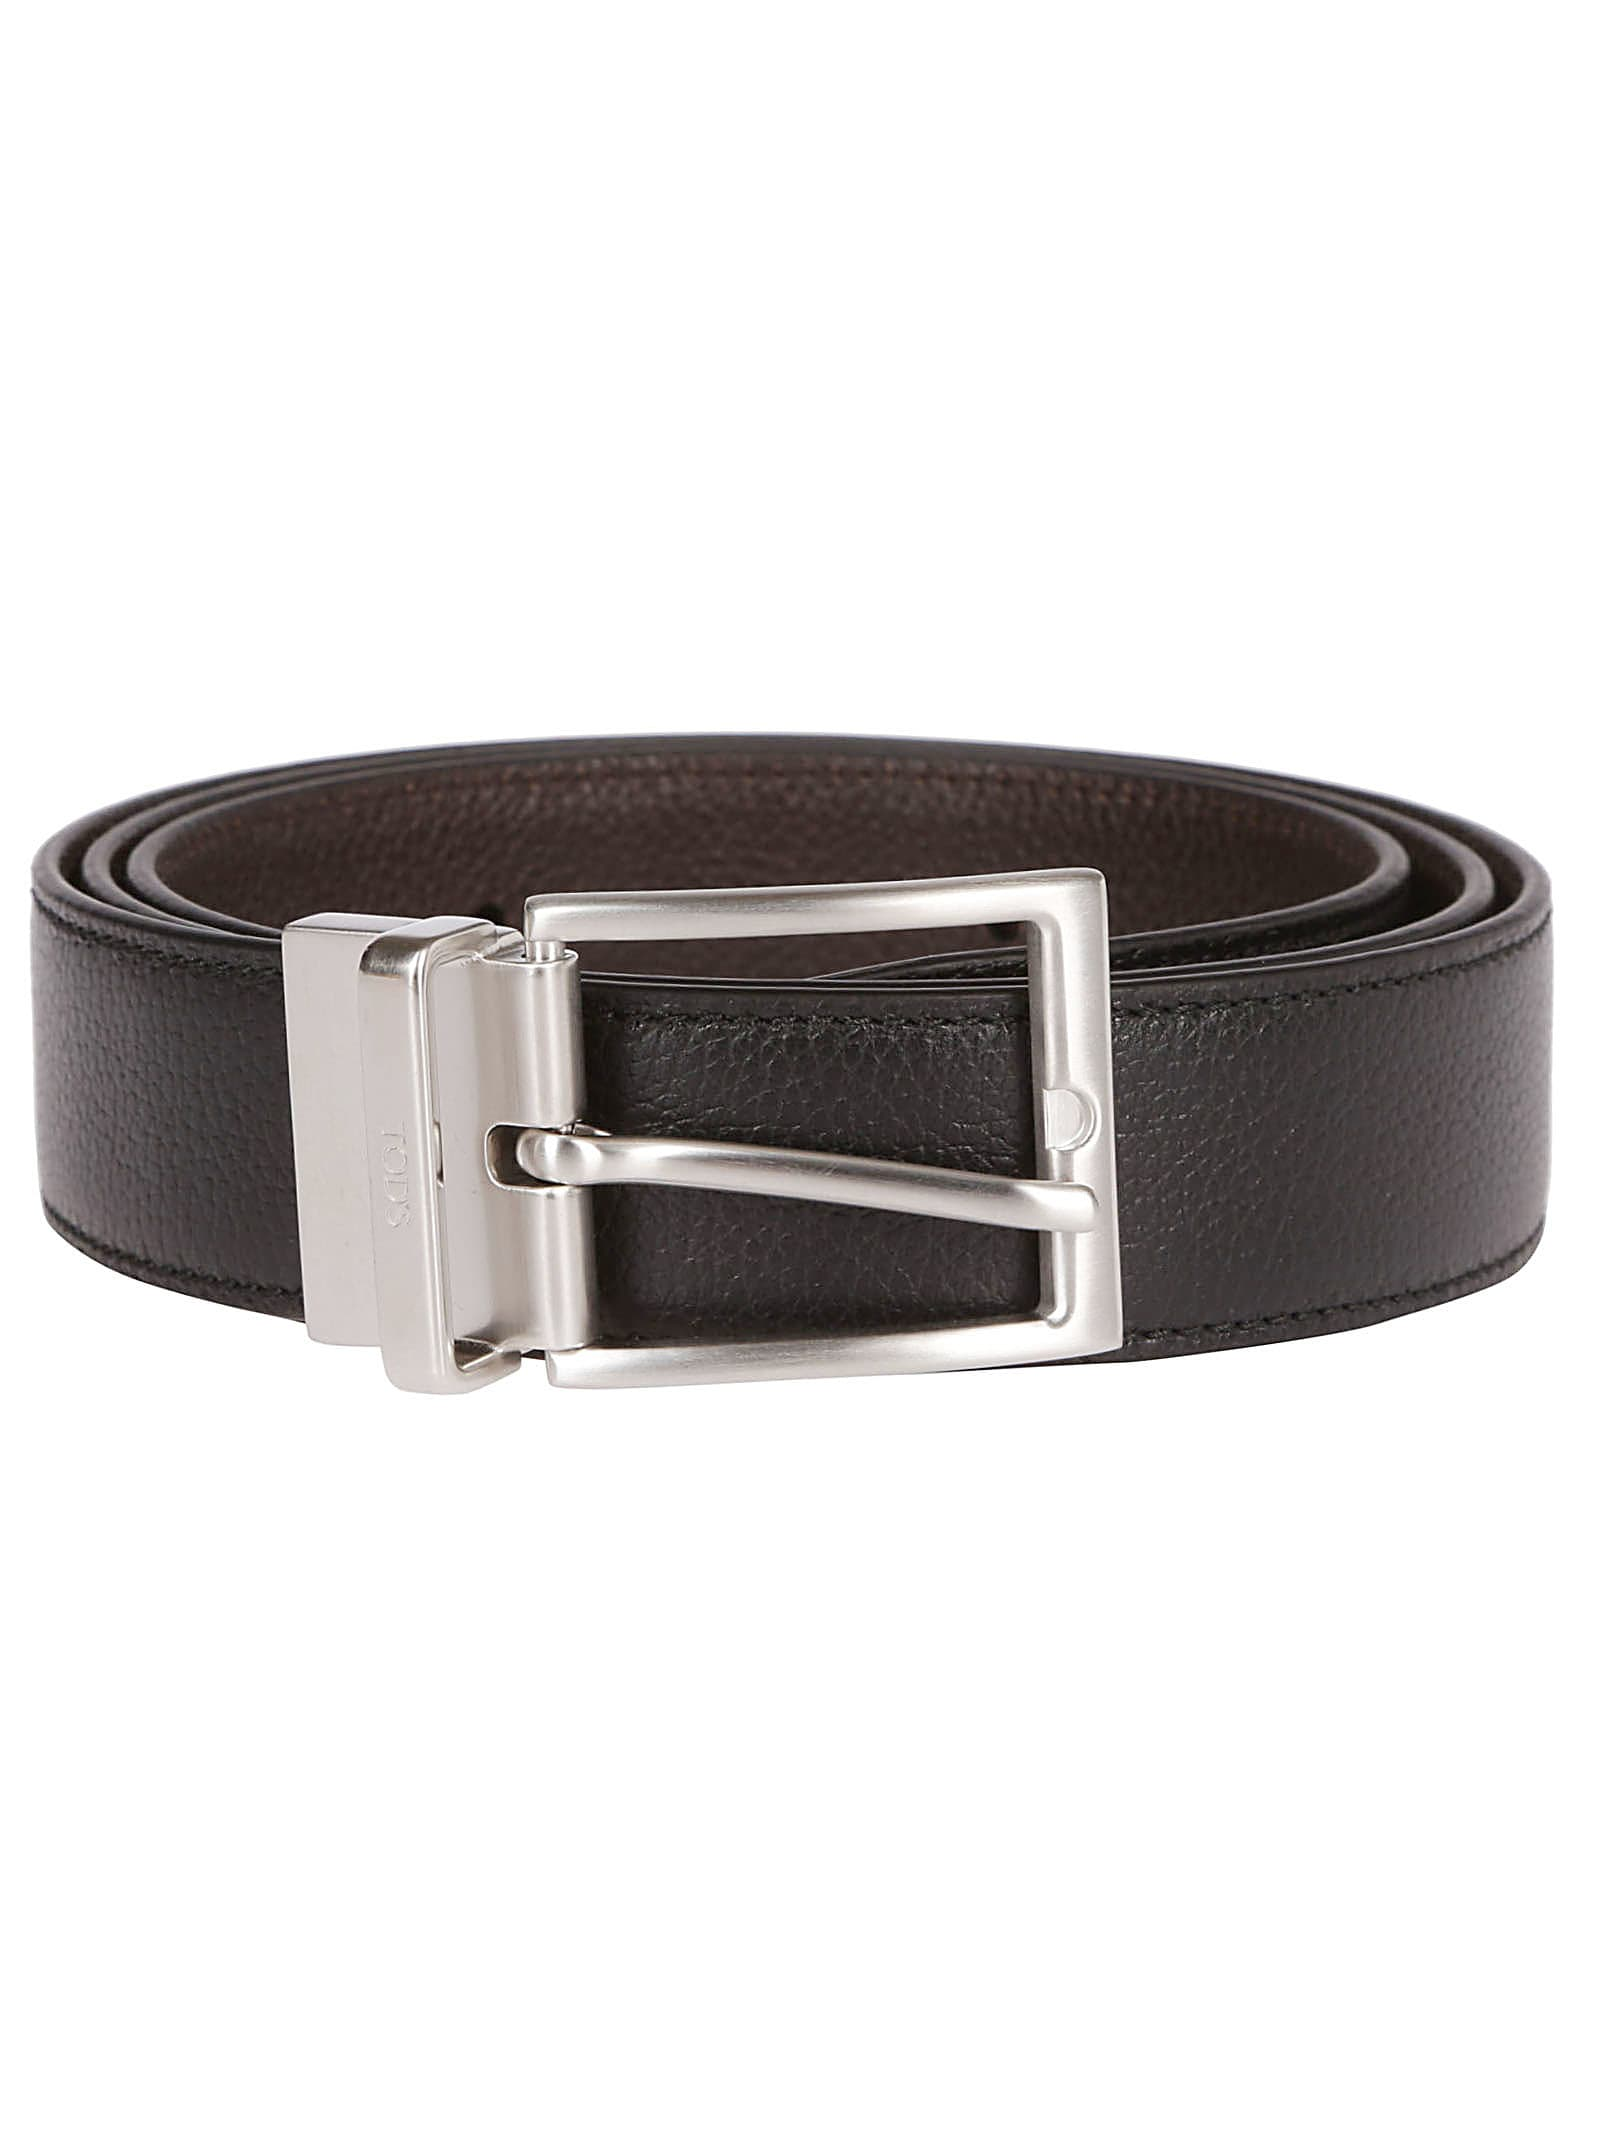 Black Leather Buckle Belt from TodsComposition: 100% Leather